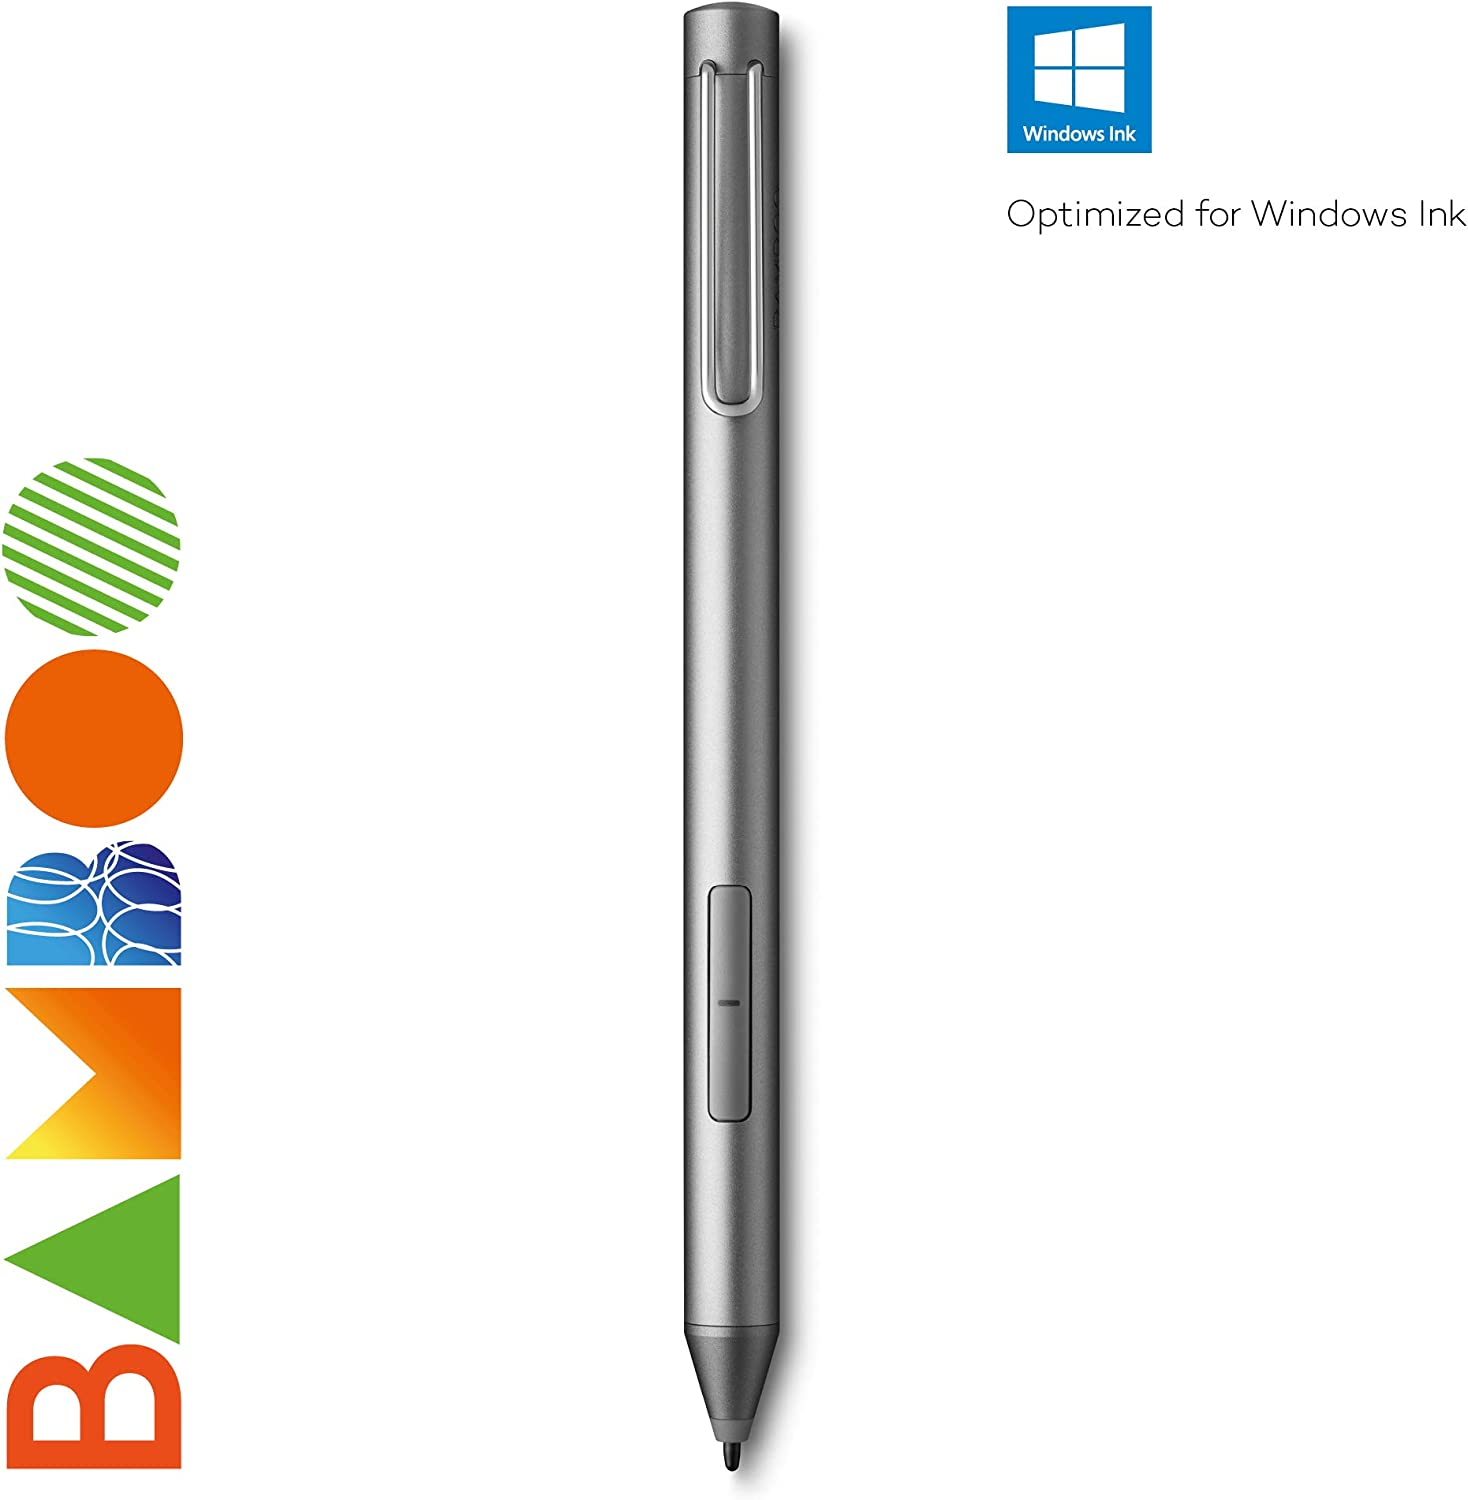 Wacom Bamboo Ink - Lápiz Digital, para una Escritura y redacción de Notas Natural en Dispositivos Aptos para lápices con Microsoft Windows 10 y Pantalla táctil, Compatible con Windows Ink, Color Gris